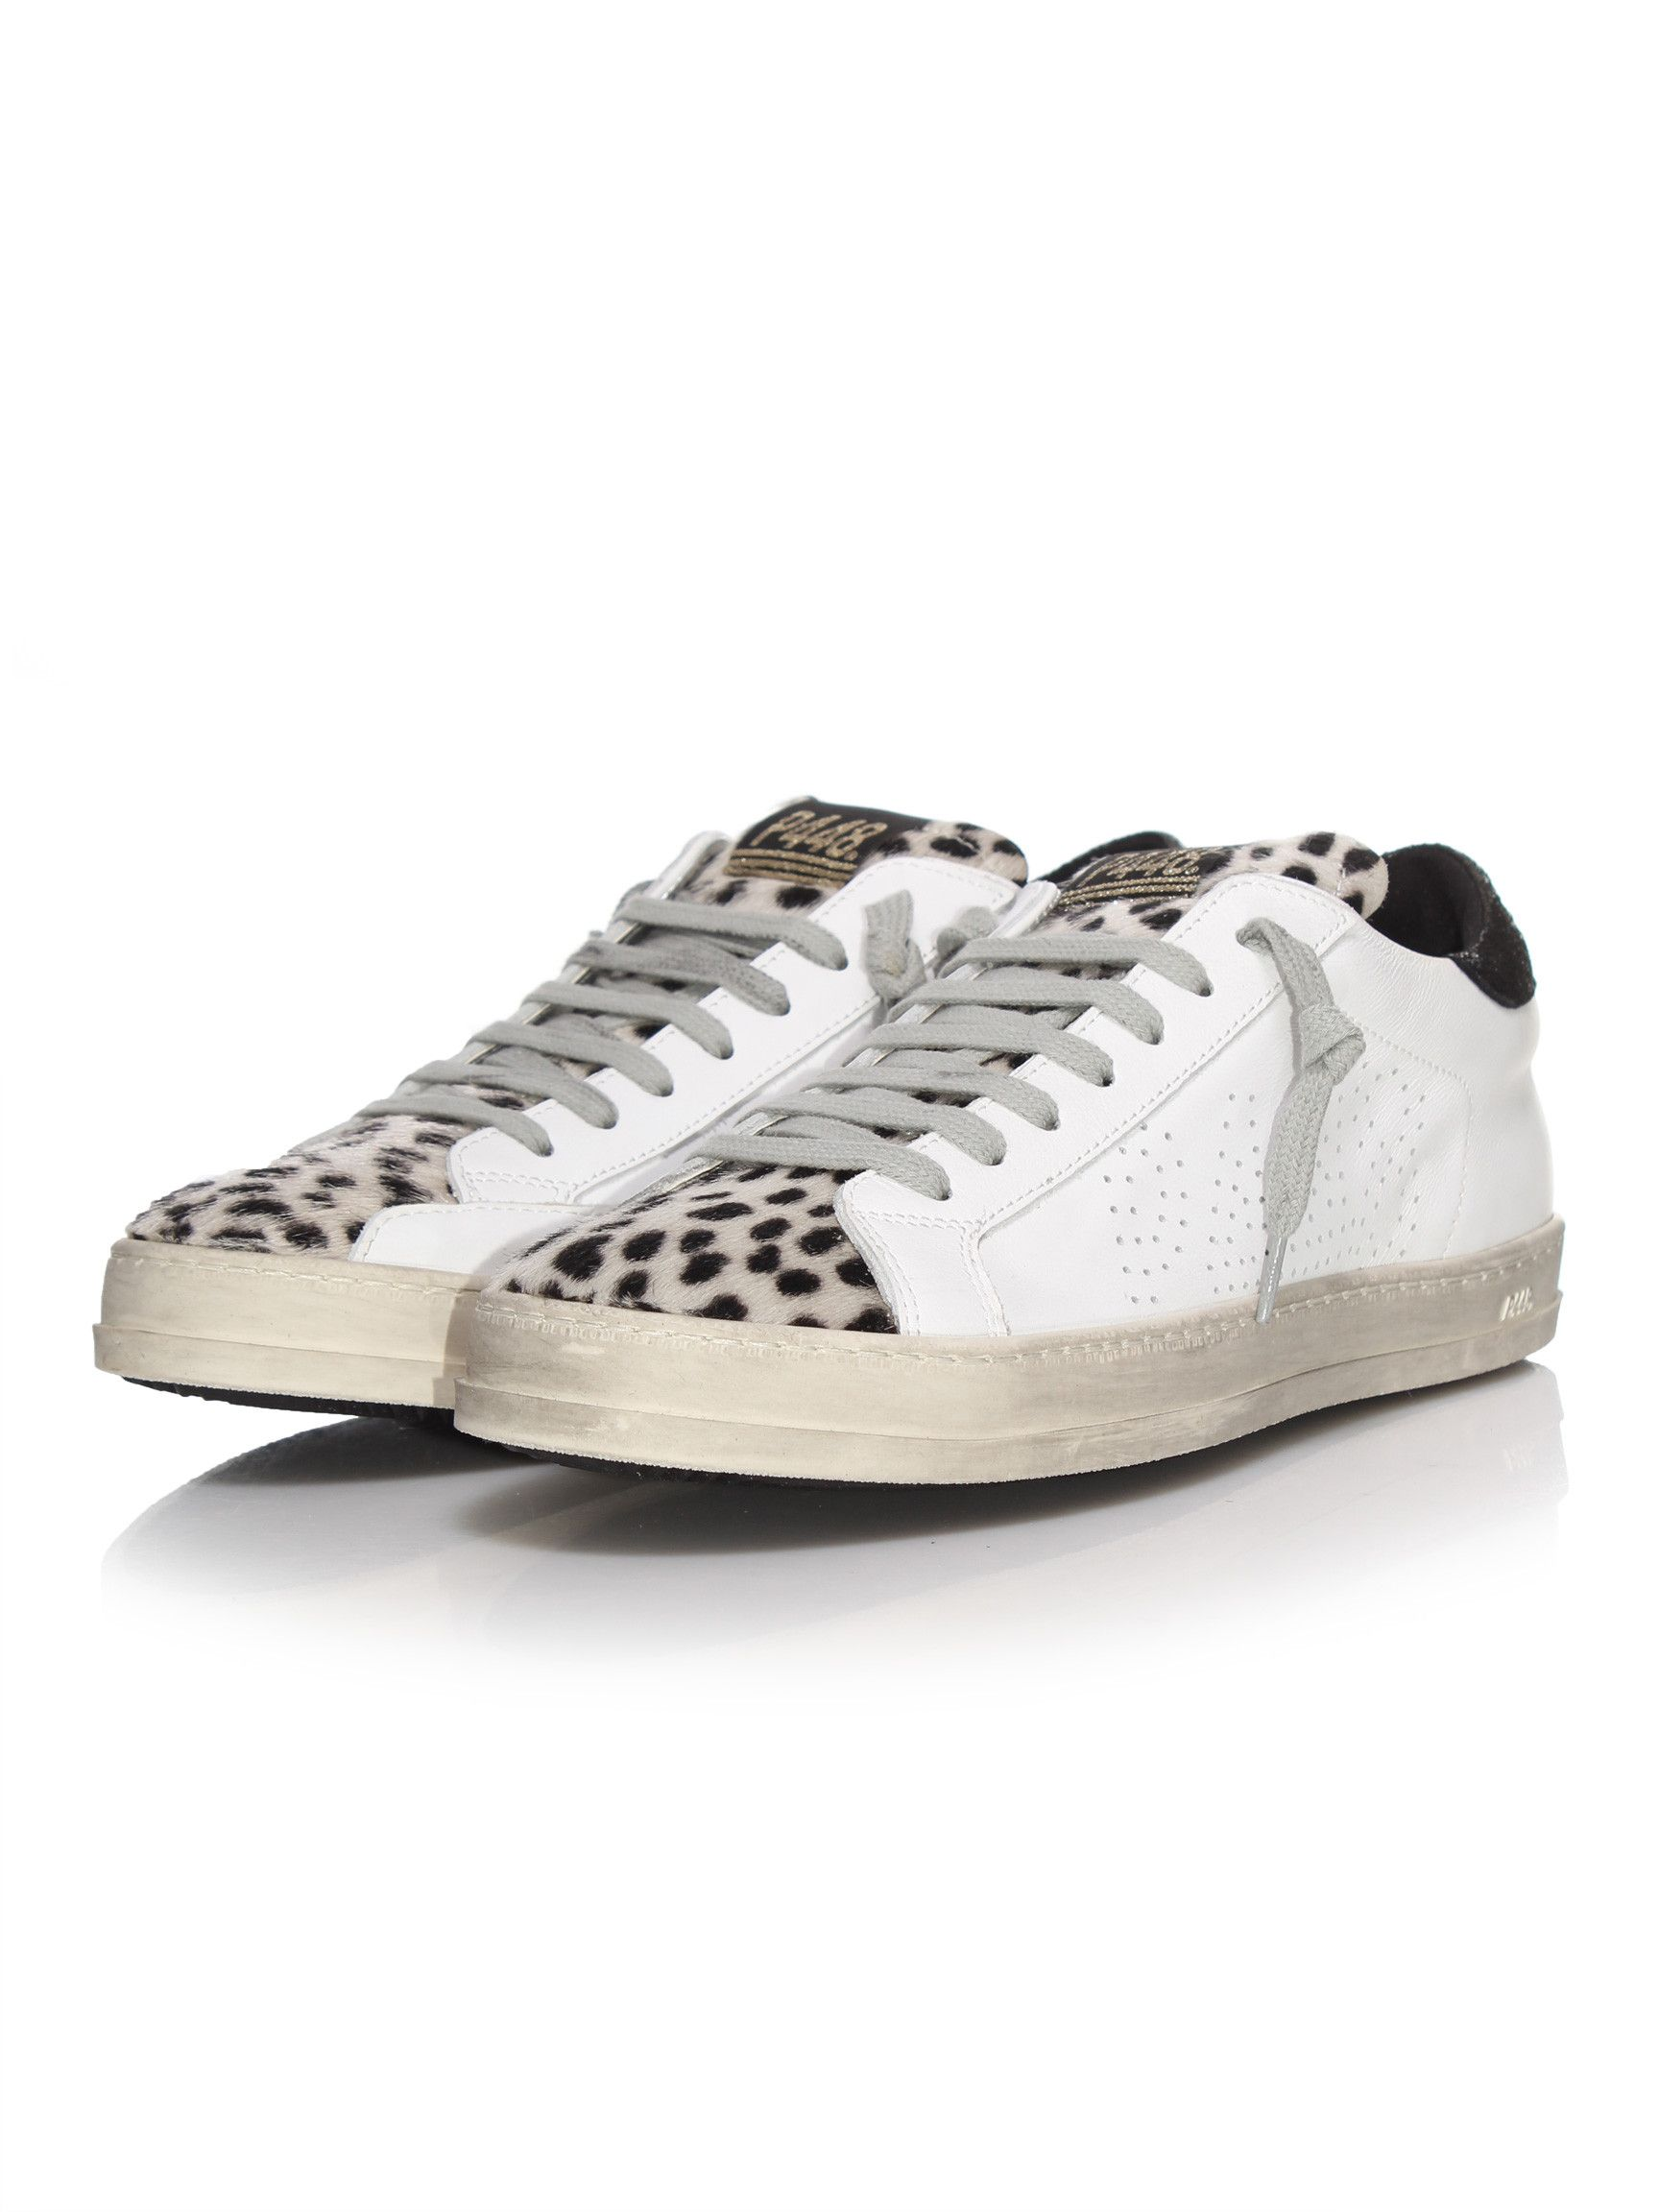 Chaussures à lacets P448 blanches Casual femme lAjeqy63Ua